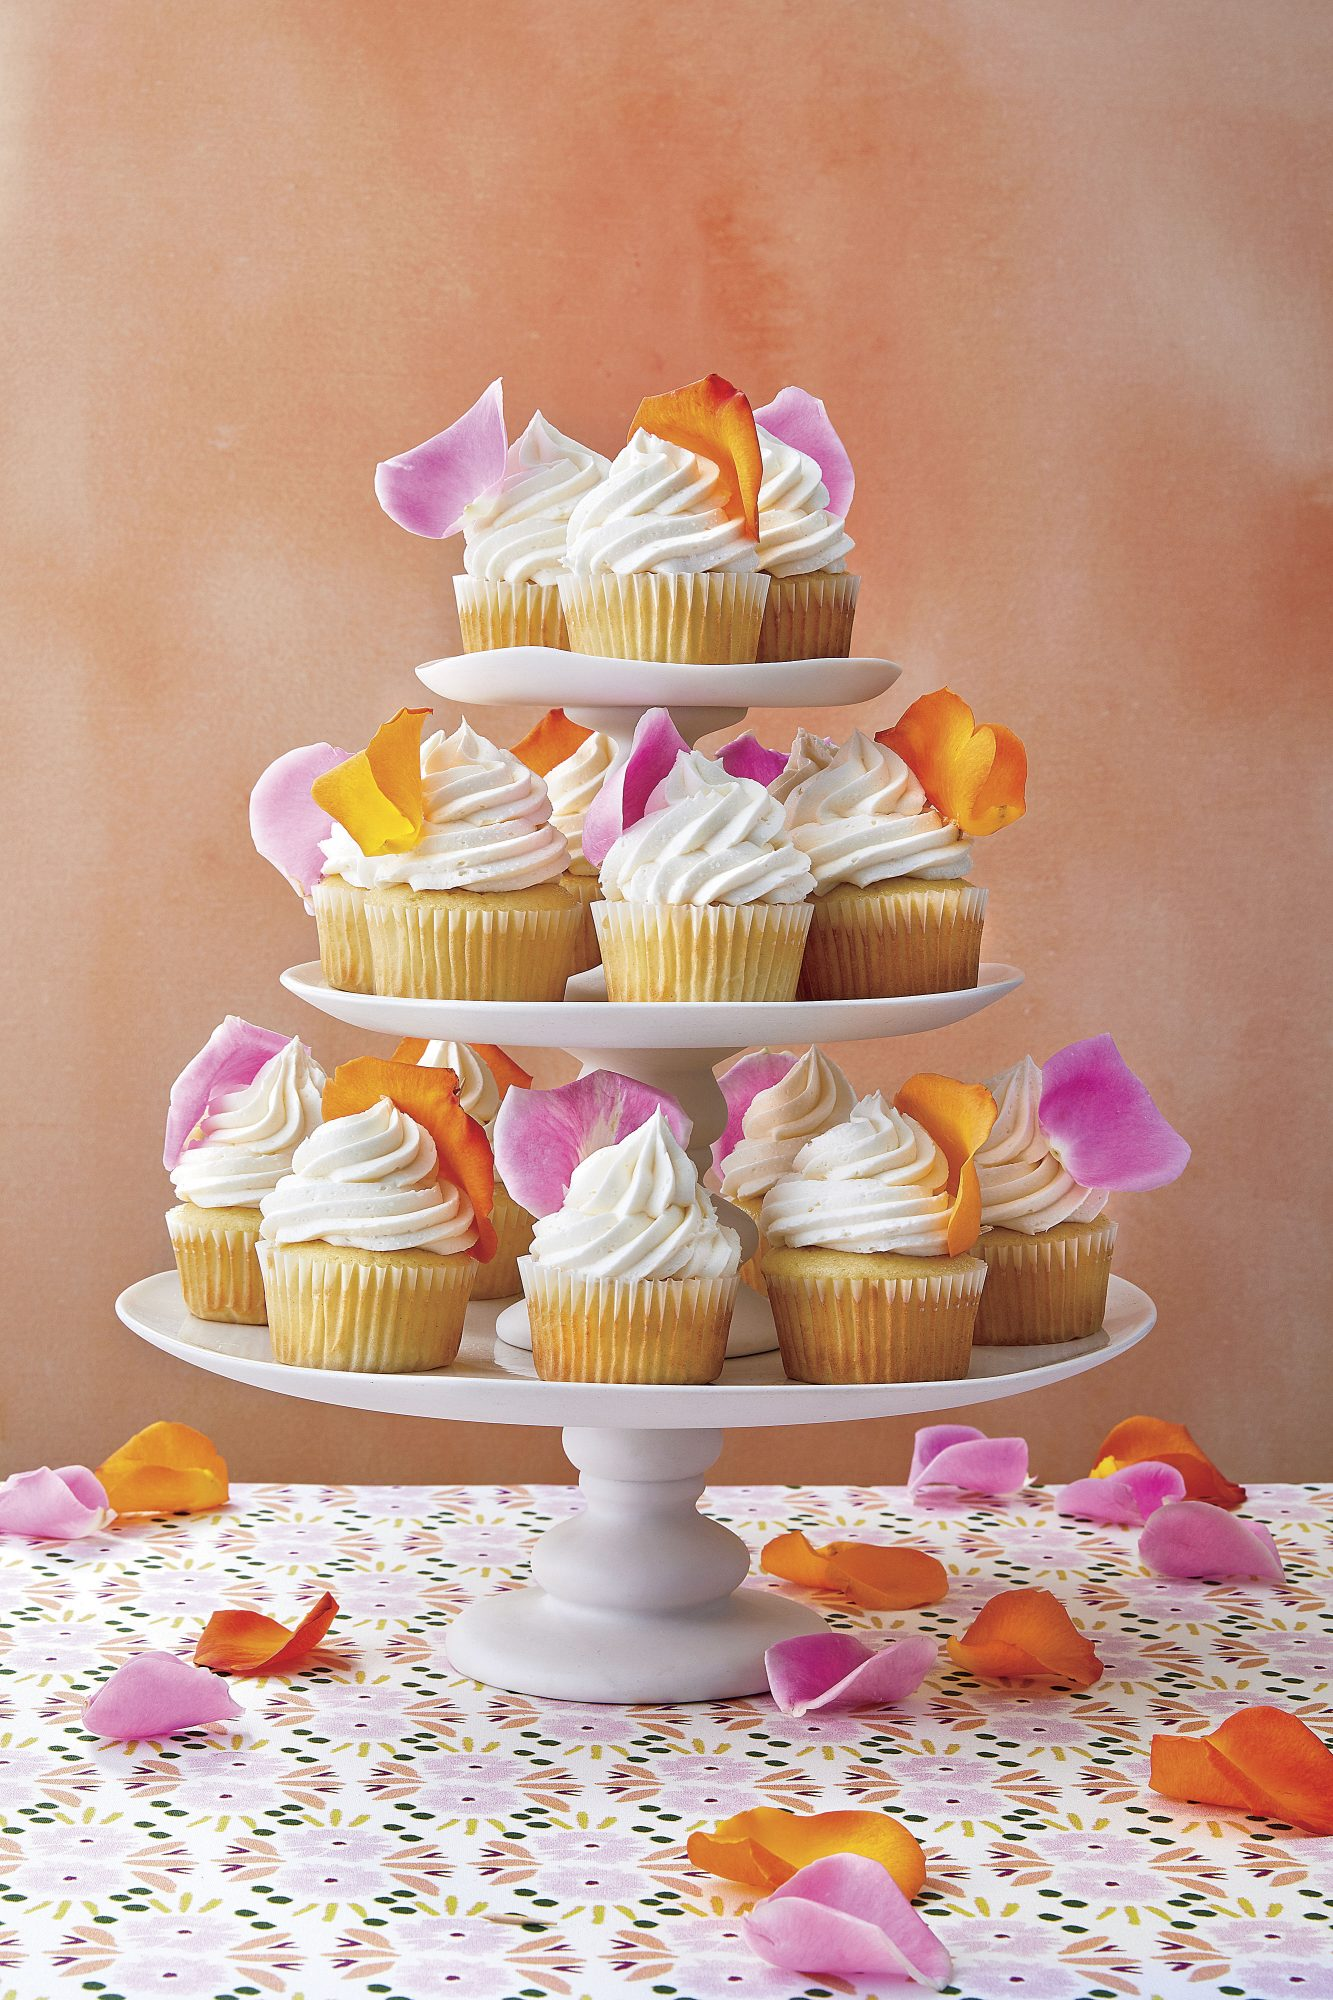 White Cupcakes with Rose Petals Mary Claire Britton